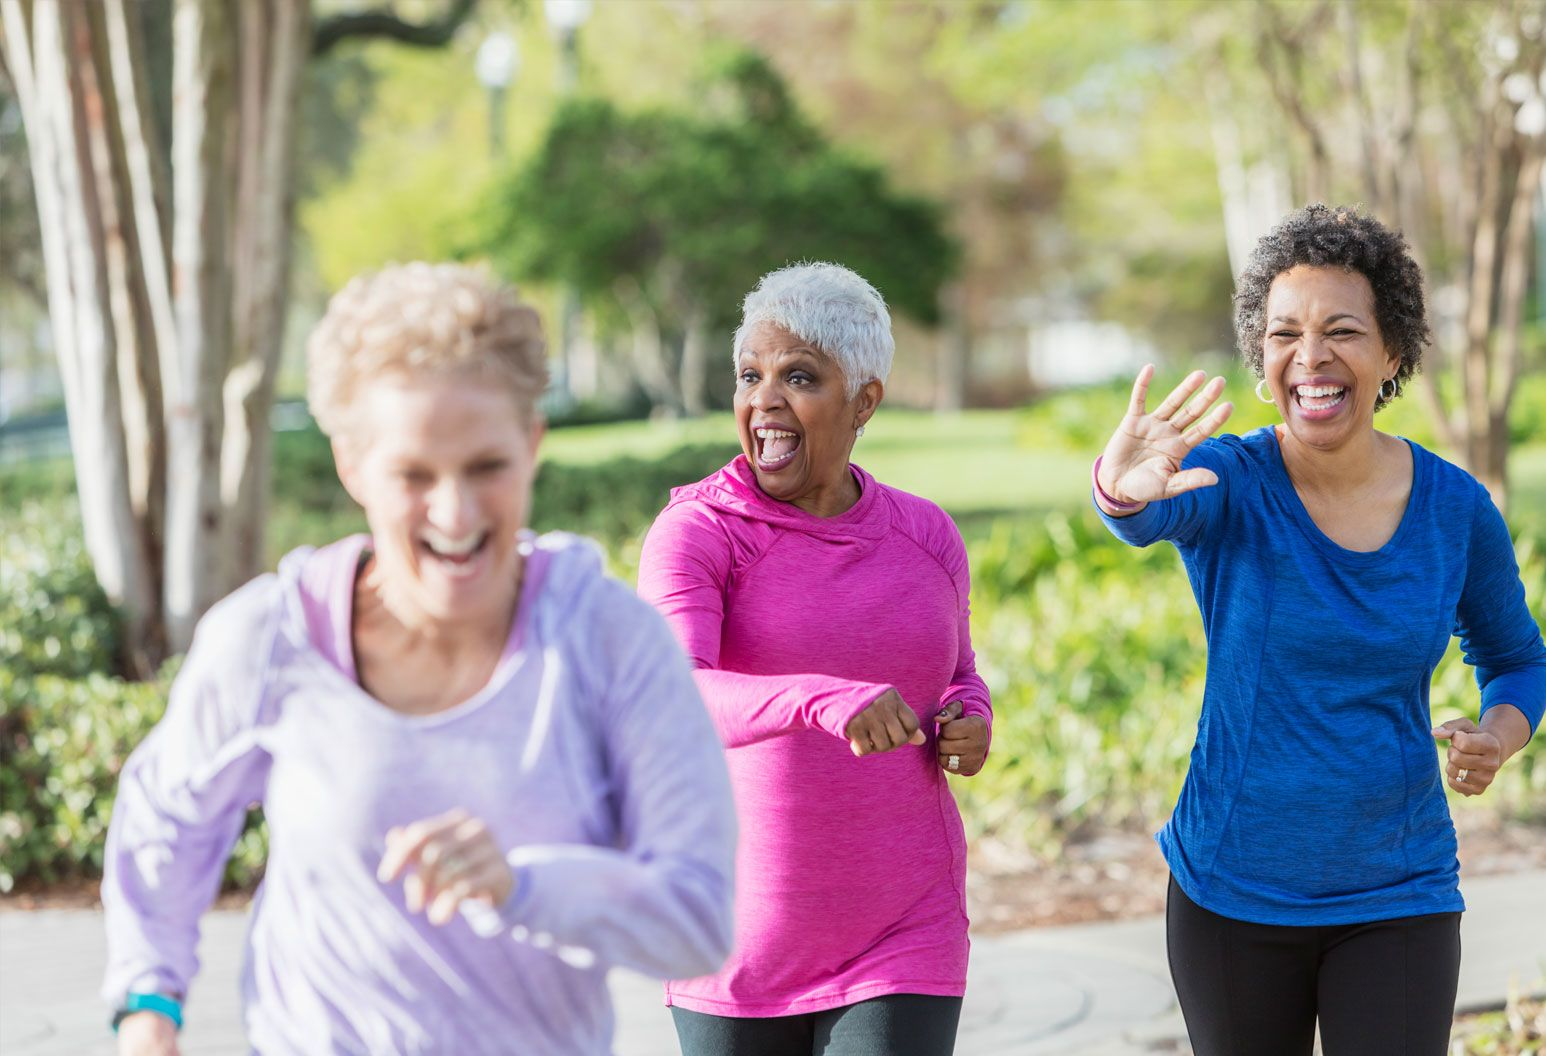 A group of three women exercise outside with big smiles on their faces.